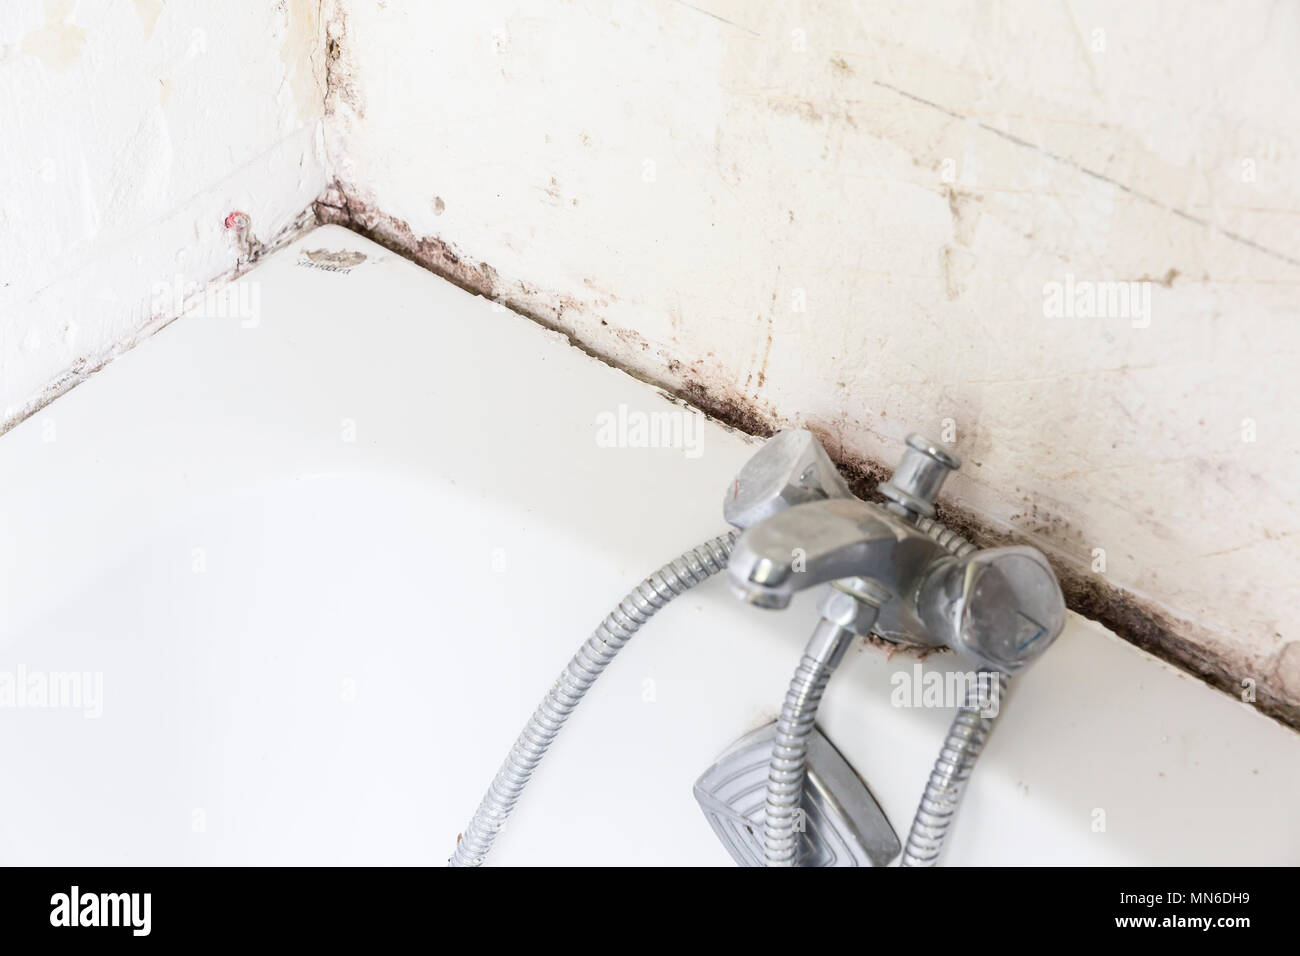 Disgusting home shower bathroom tile sealant with mould and mildew ...